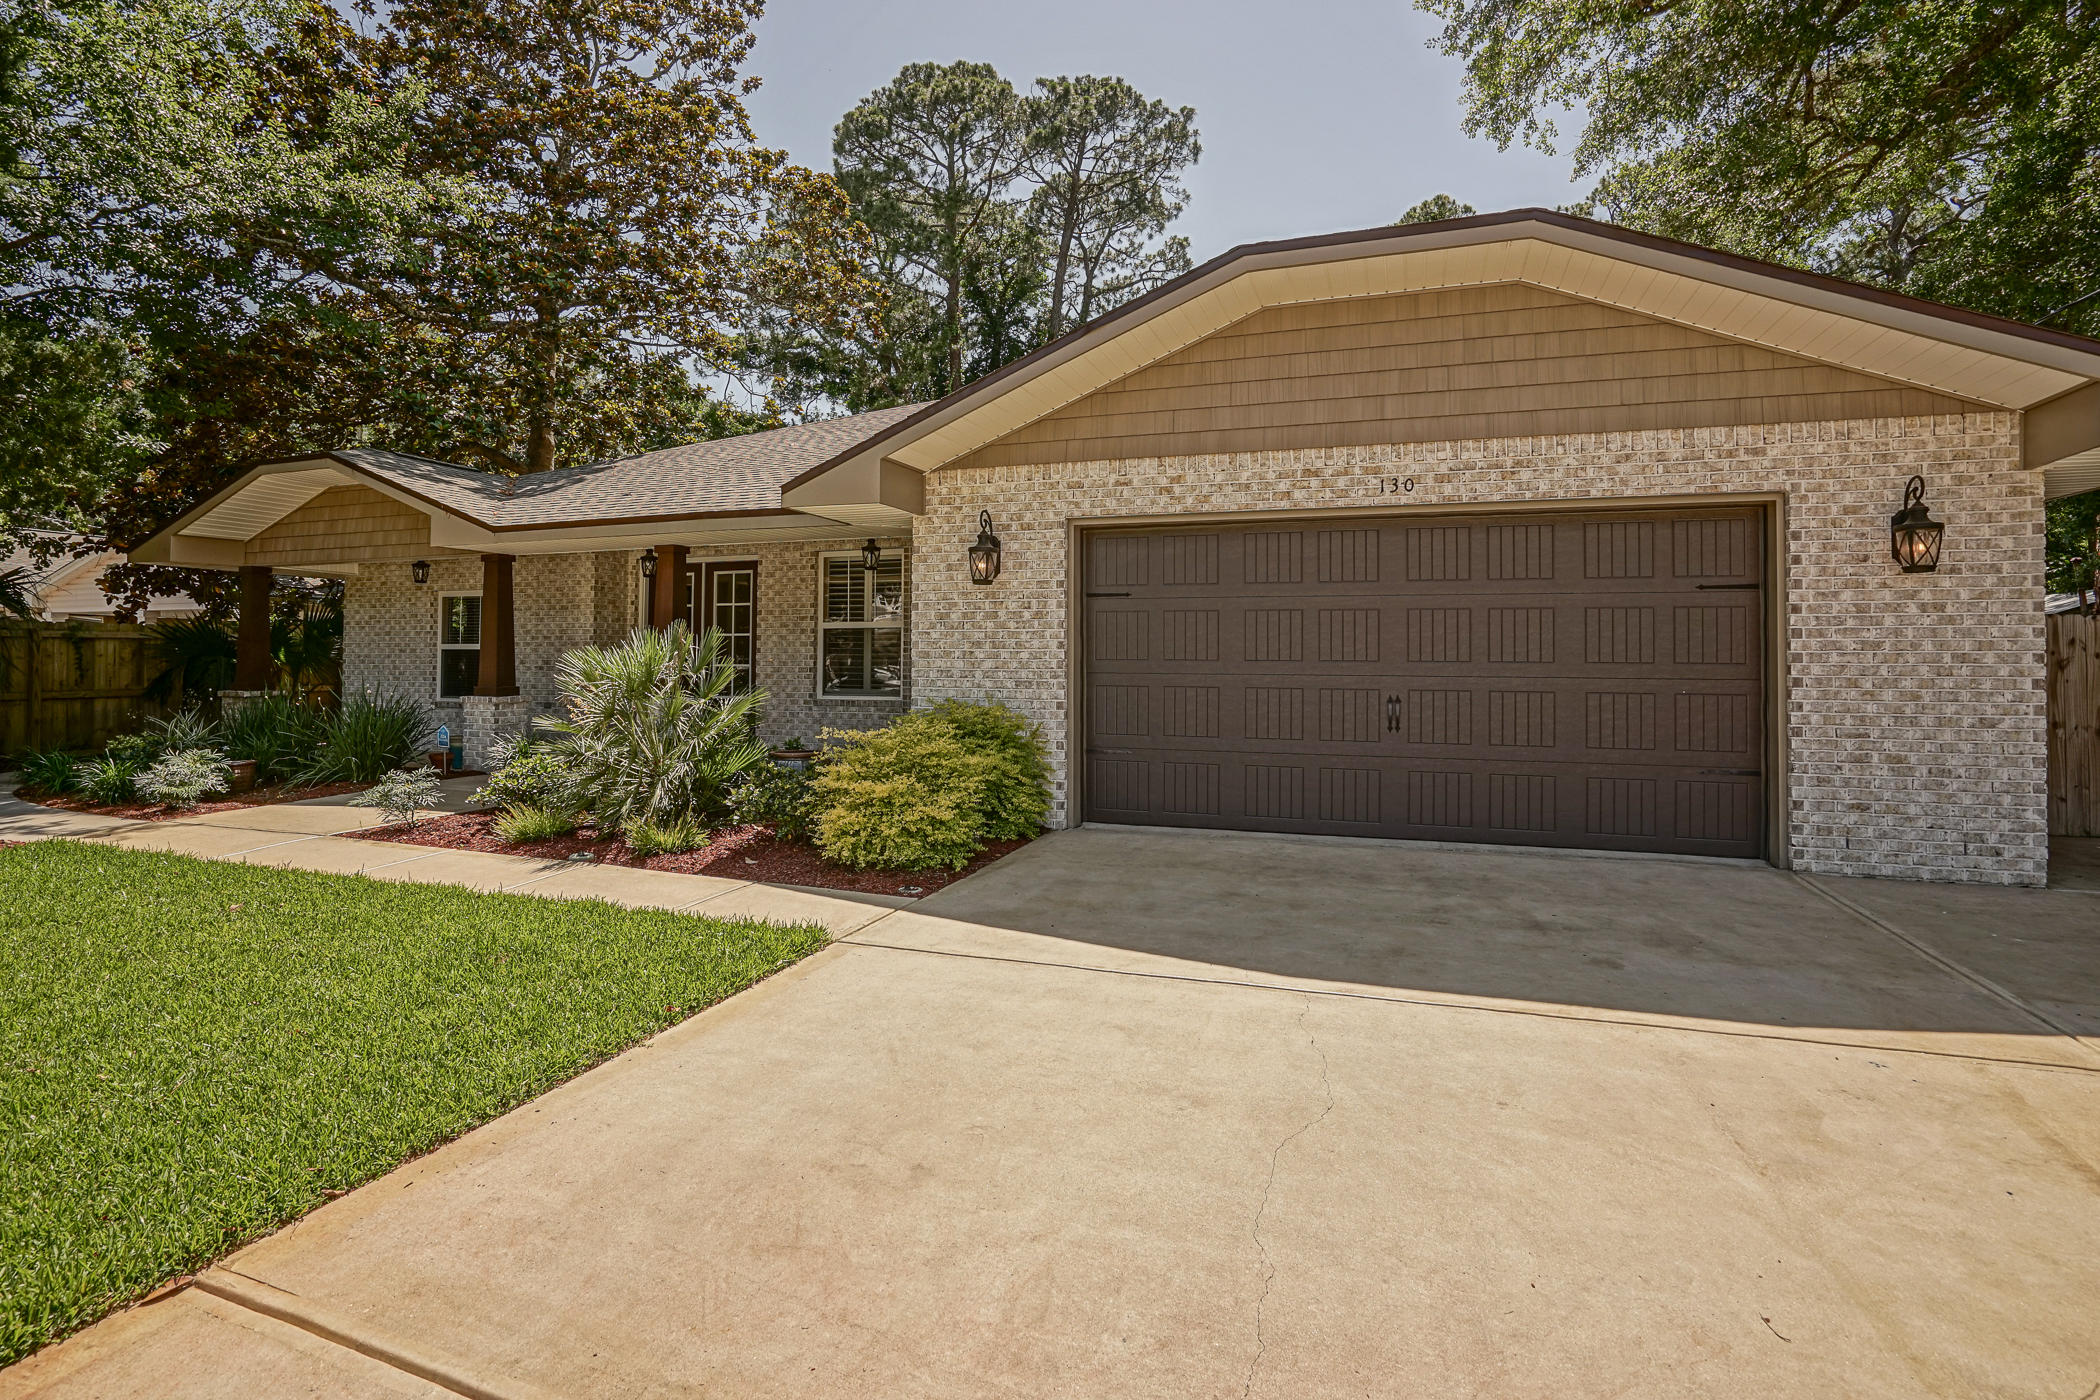 Photo of home for sale at 130 Magnolia, Fort Walton Beach FL